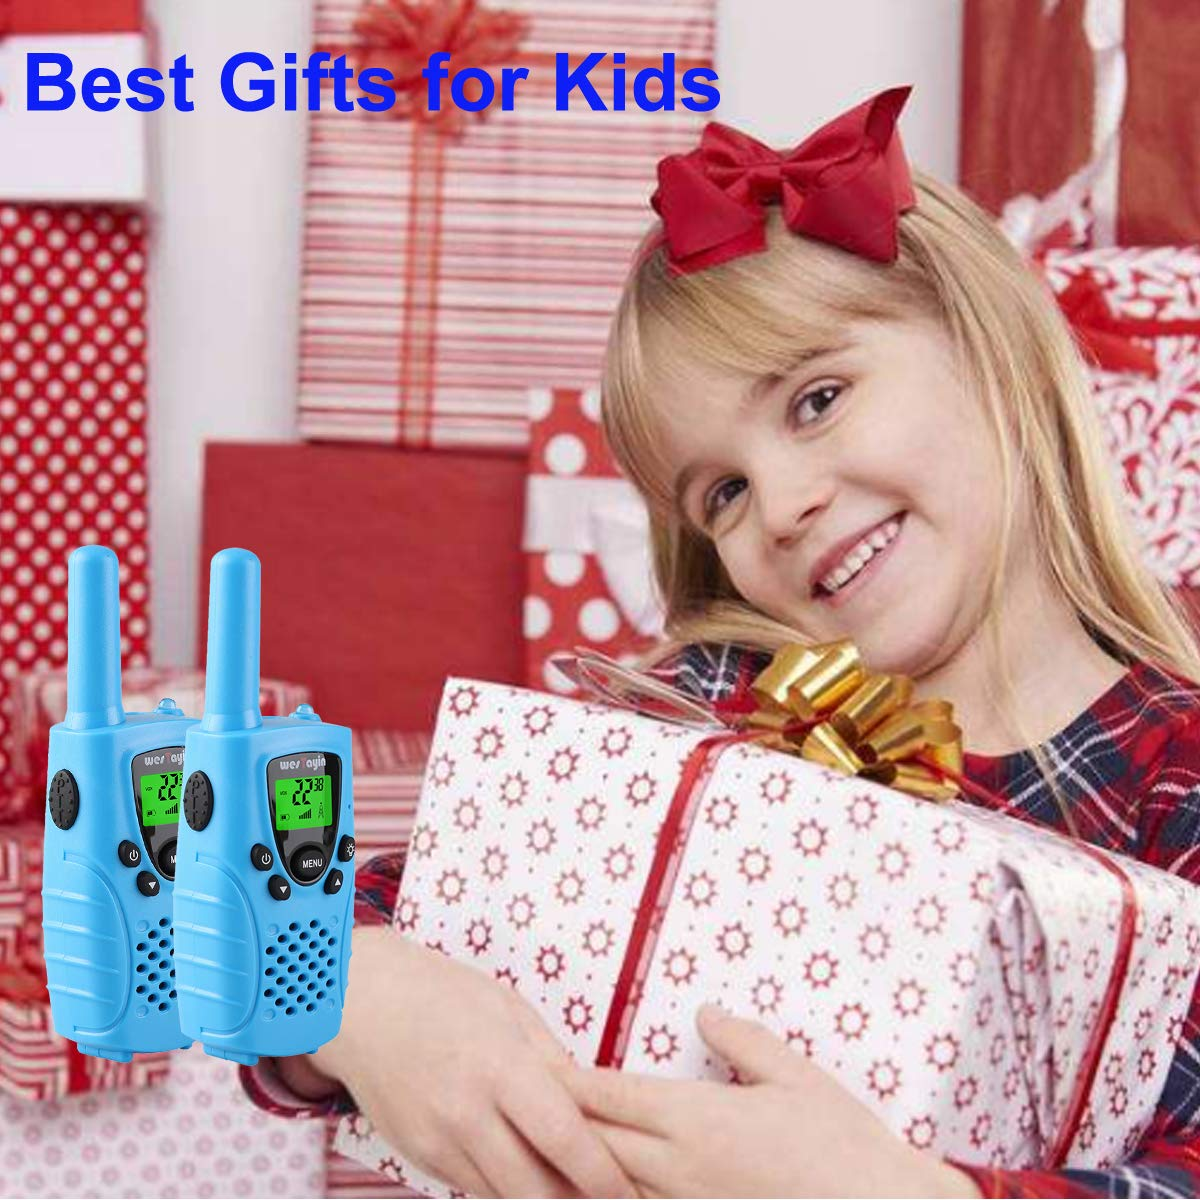 WES TAYIN Kids Walkie Talkies Rechargable, 4 Miles Long Range Walkie Talkies Toy with Durable Rugged Sports Design and Flashlight, Two Way Radios Toy 2 Pack, Batteries not Included(Blue) by WES TAYIN (Image #7)